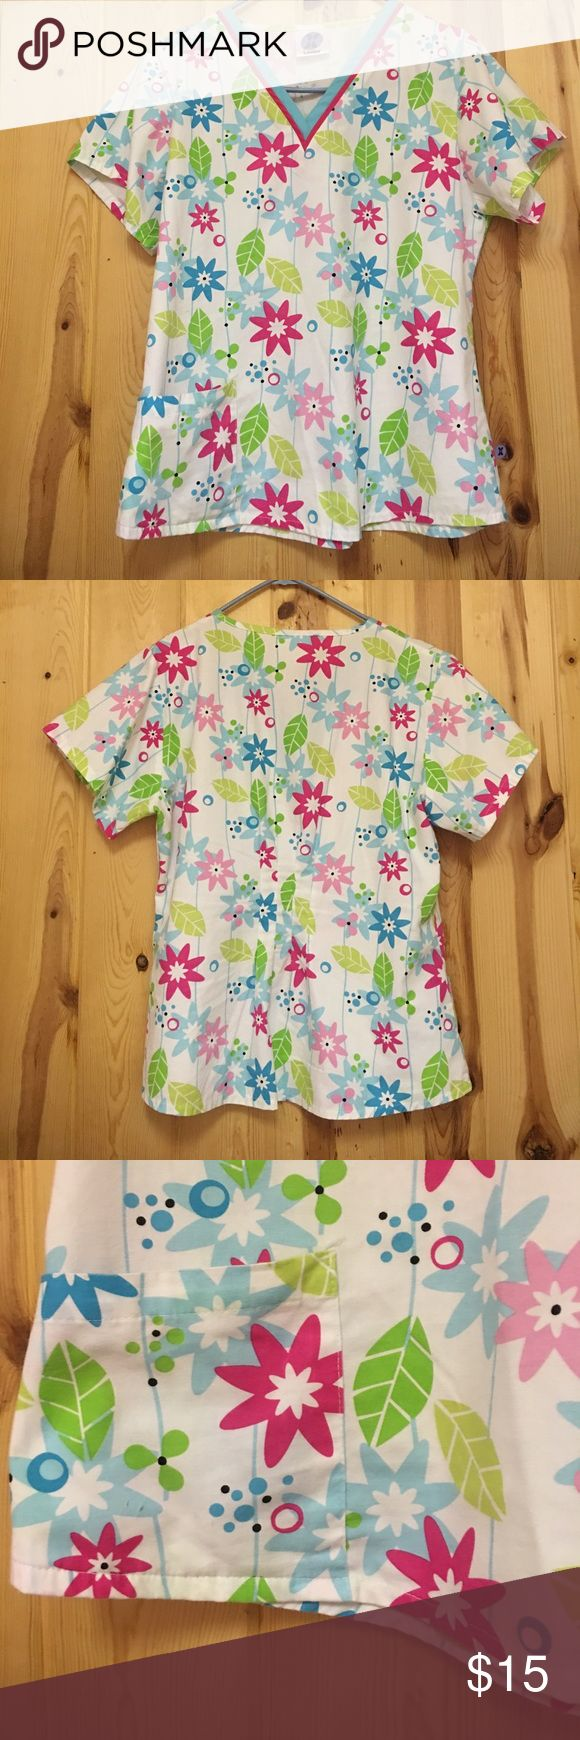 Landau Scrub Top Small EUC Landau Scrub Top Small EUC  Top has one right front pocket Landau Tops